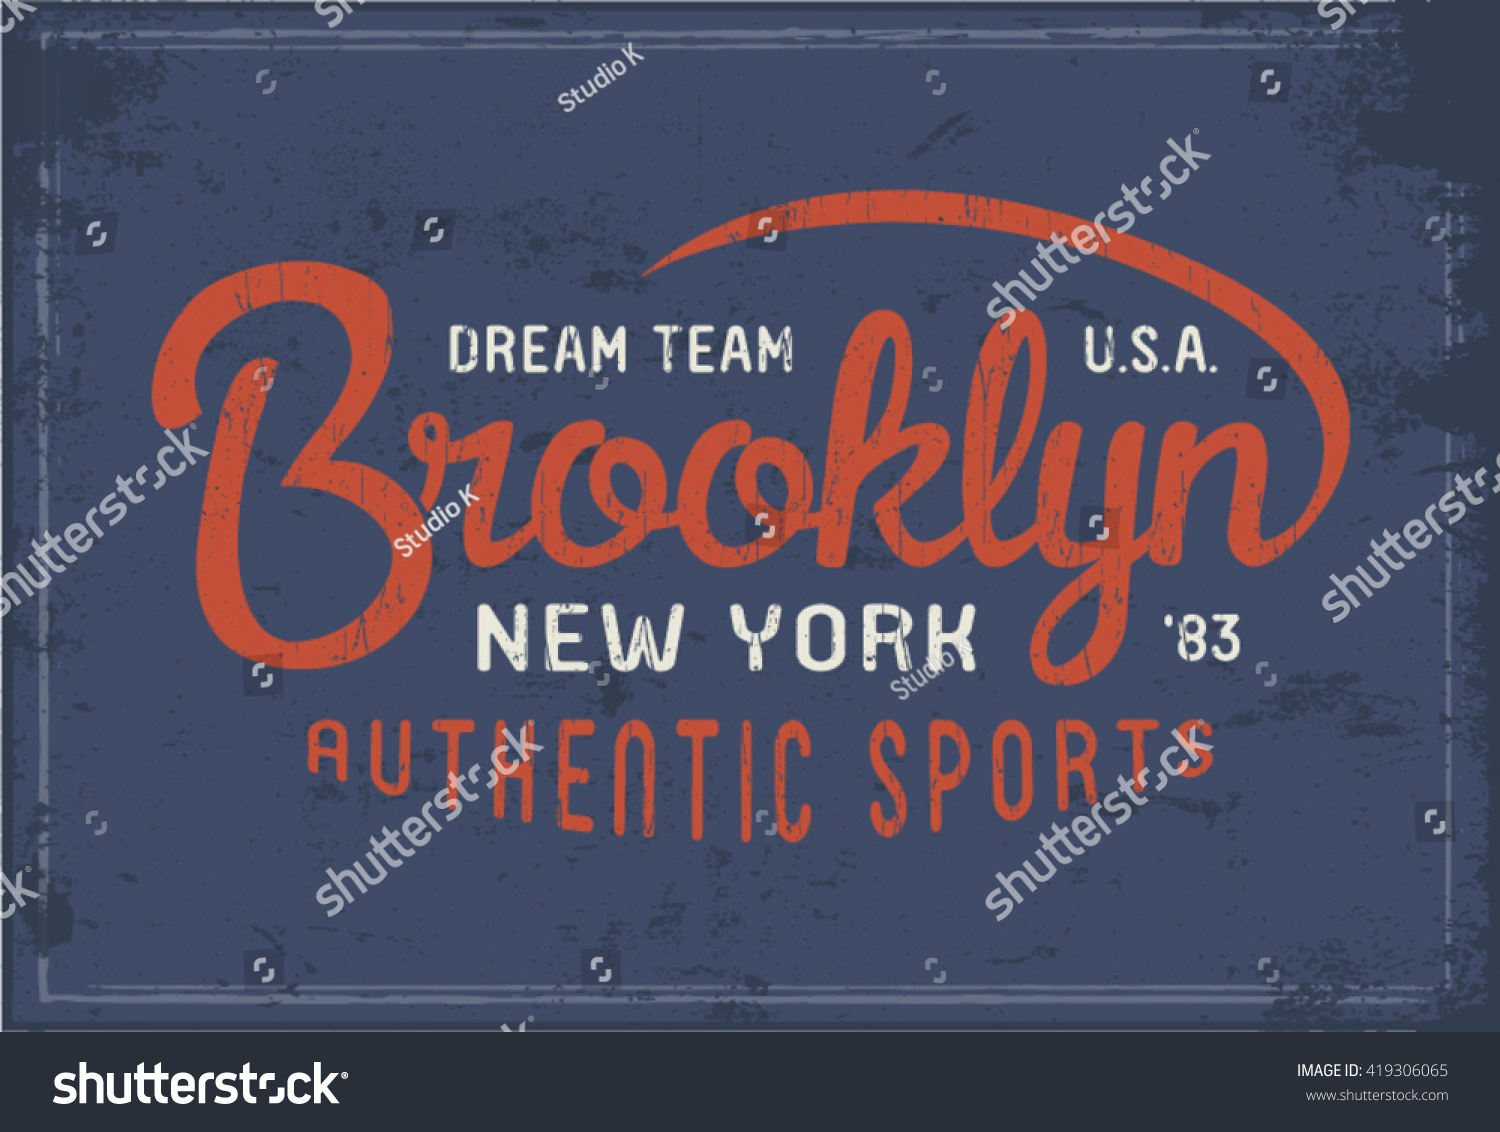 Brooklyn New York print for t-shirt or apparel authentic sports theme Old school graphic for fashion and printing Vector with retro design and typography Vintage effects are easily removable